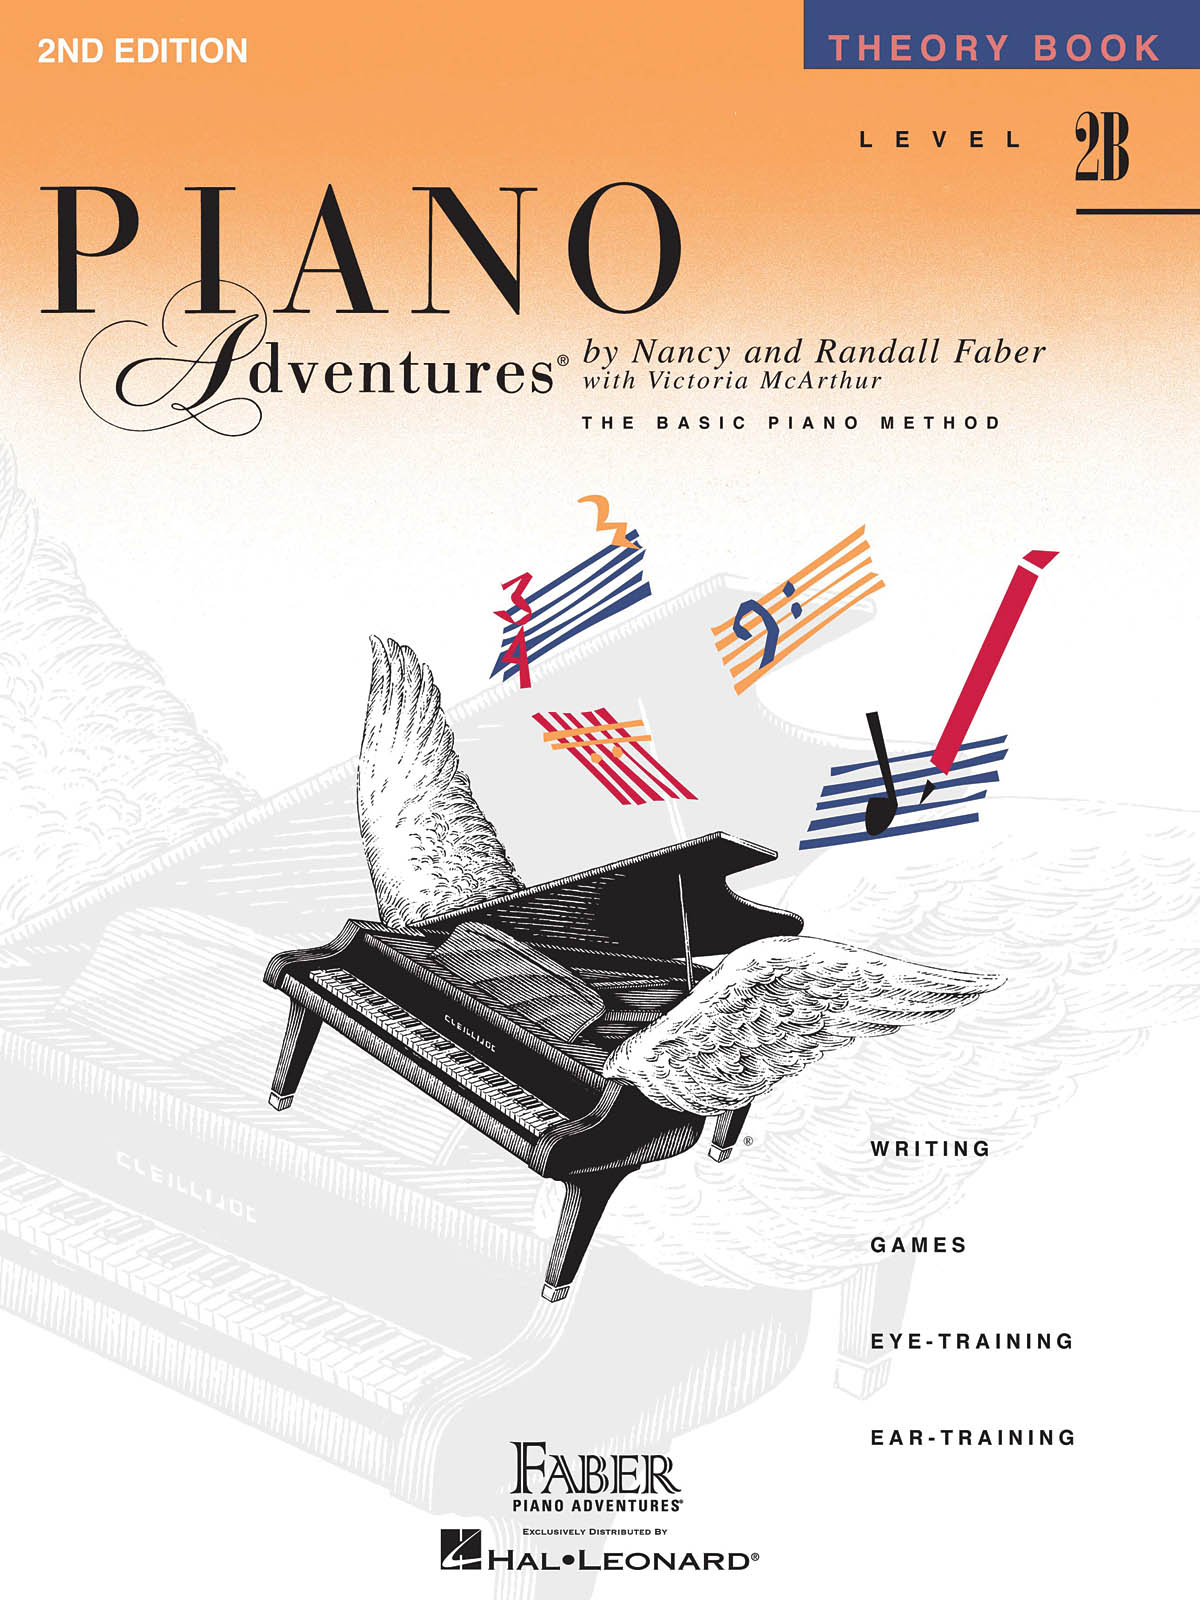 Faber Piano Adventures, Theory Book, Level 2B